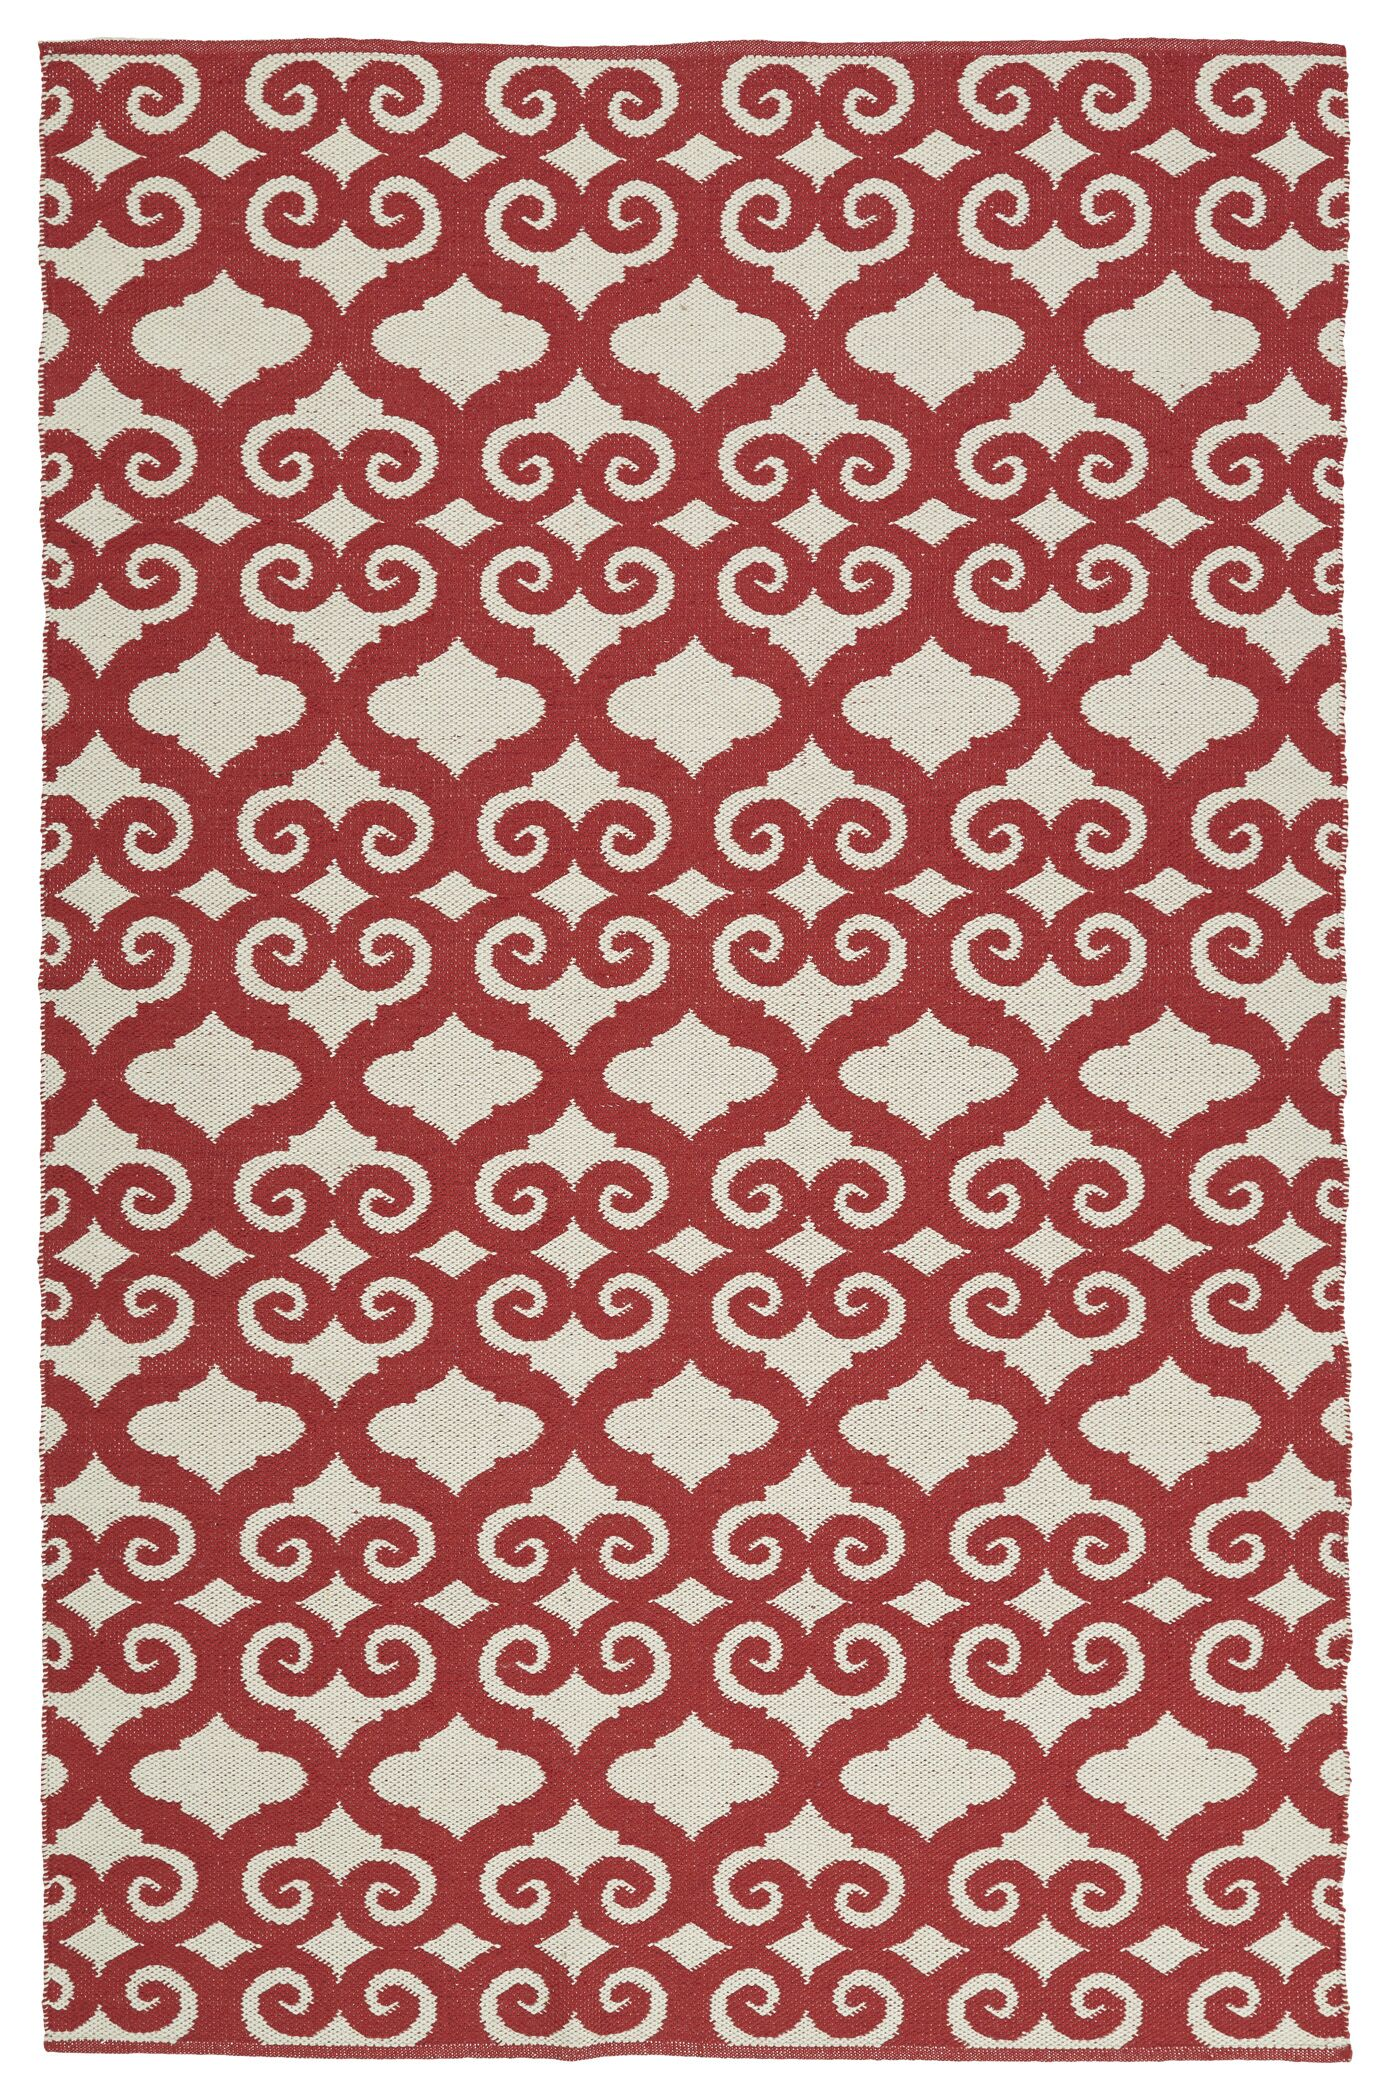 Covington Red/White Indoor/Outdoor Area Rug Rug Size: Rectangle 9' x 12'